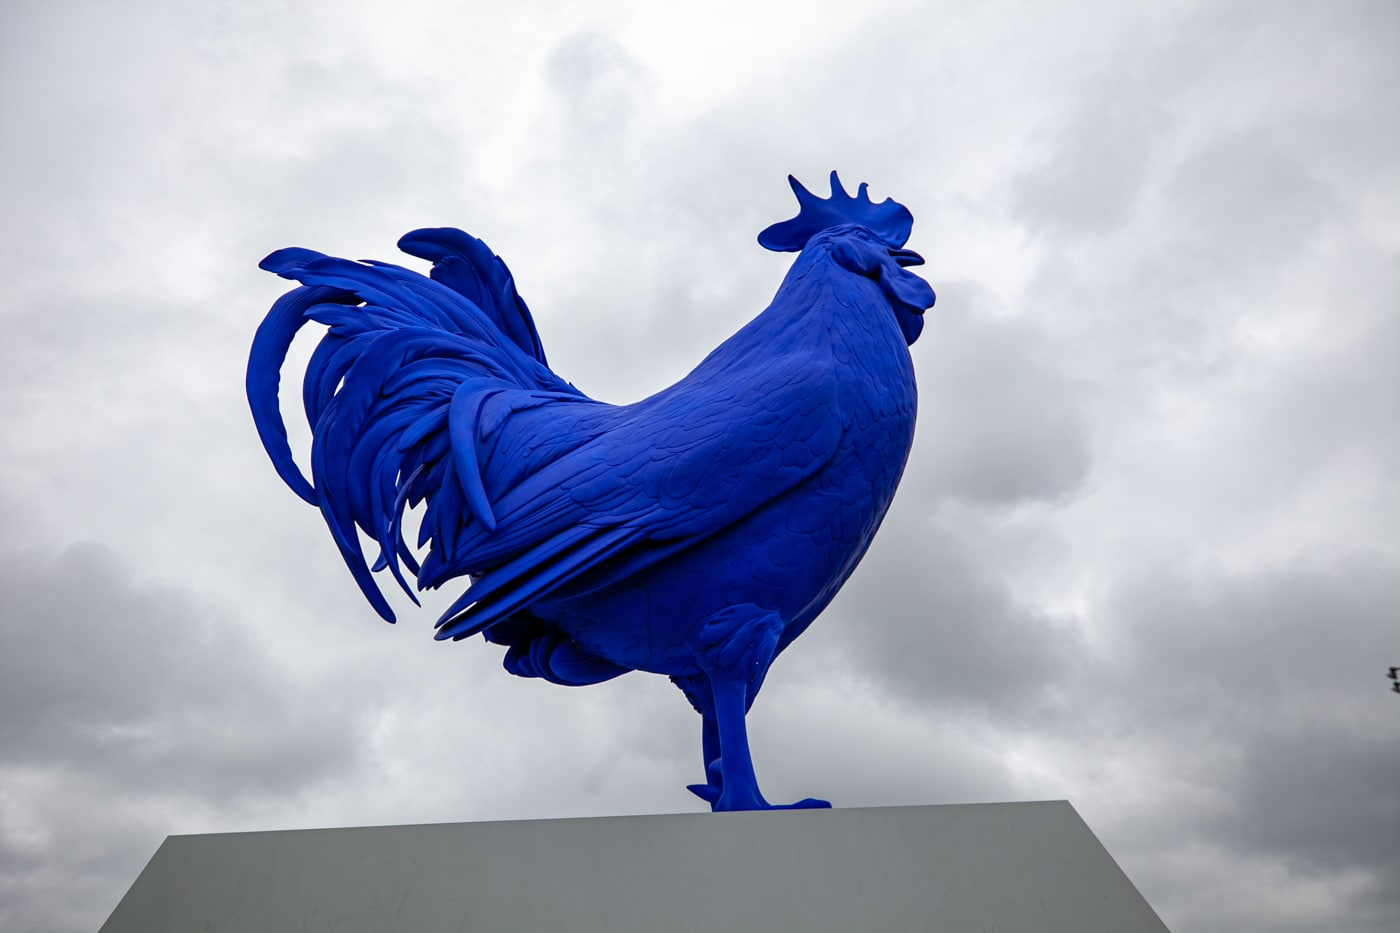 Katharina Fristc's Hahn/Cock - a big blue rooster -  at Minneapolis Sculpture Garden in Minnesota - Minneapolis roadside attractions in Minnesota